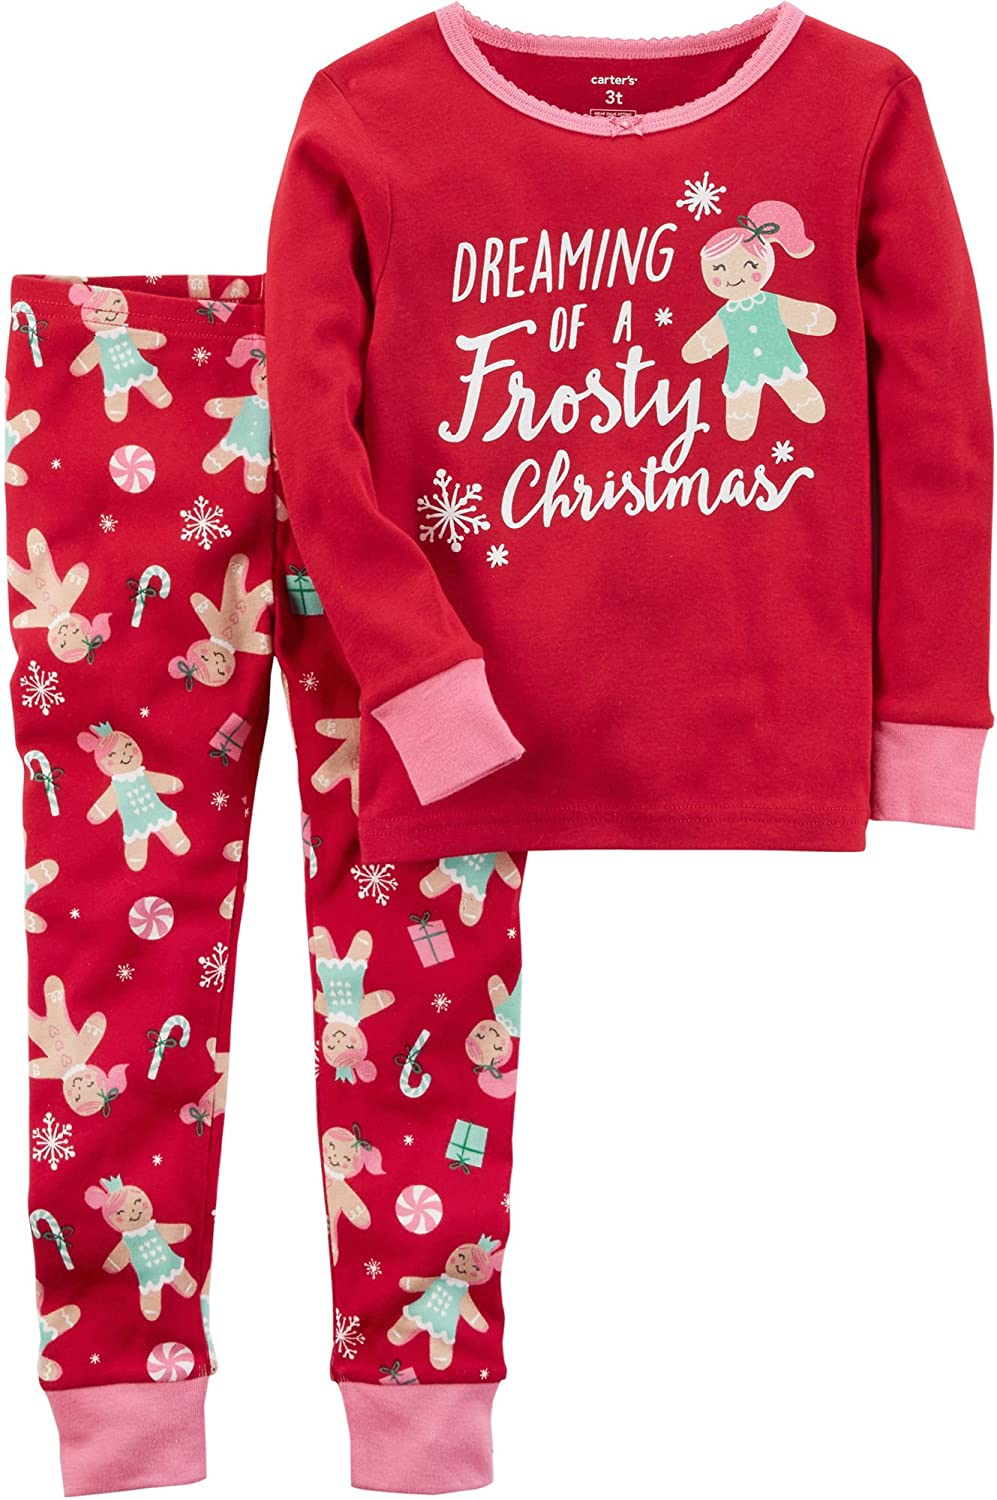 436382bf4 Amazon.com  Carter s Girls  2 Piece Pj Set (377g022l)  Clothing